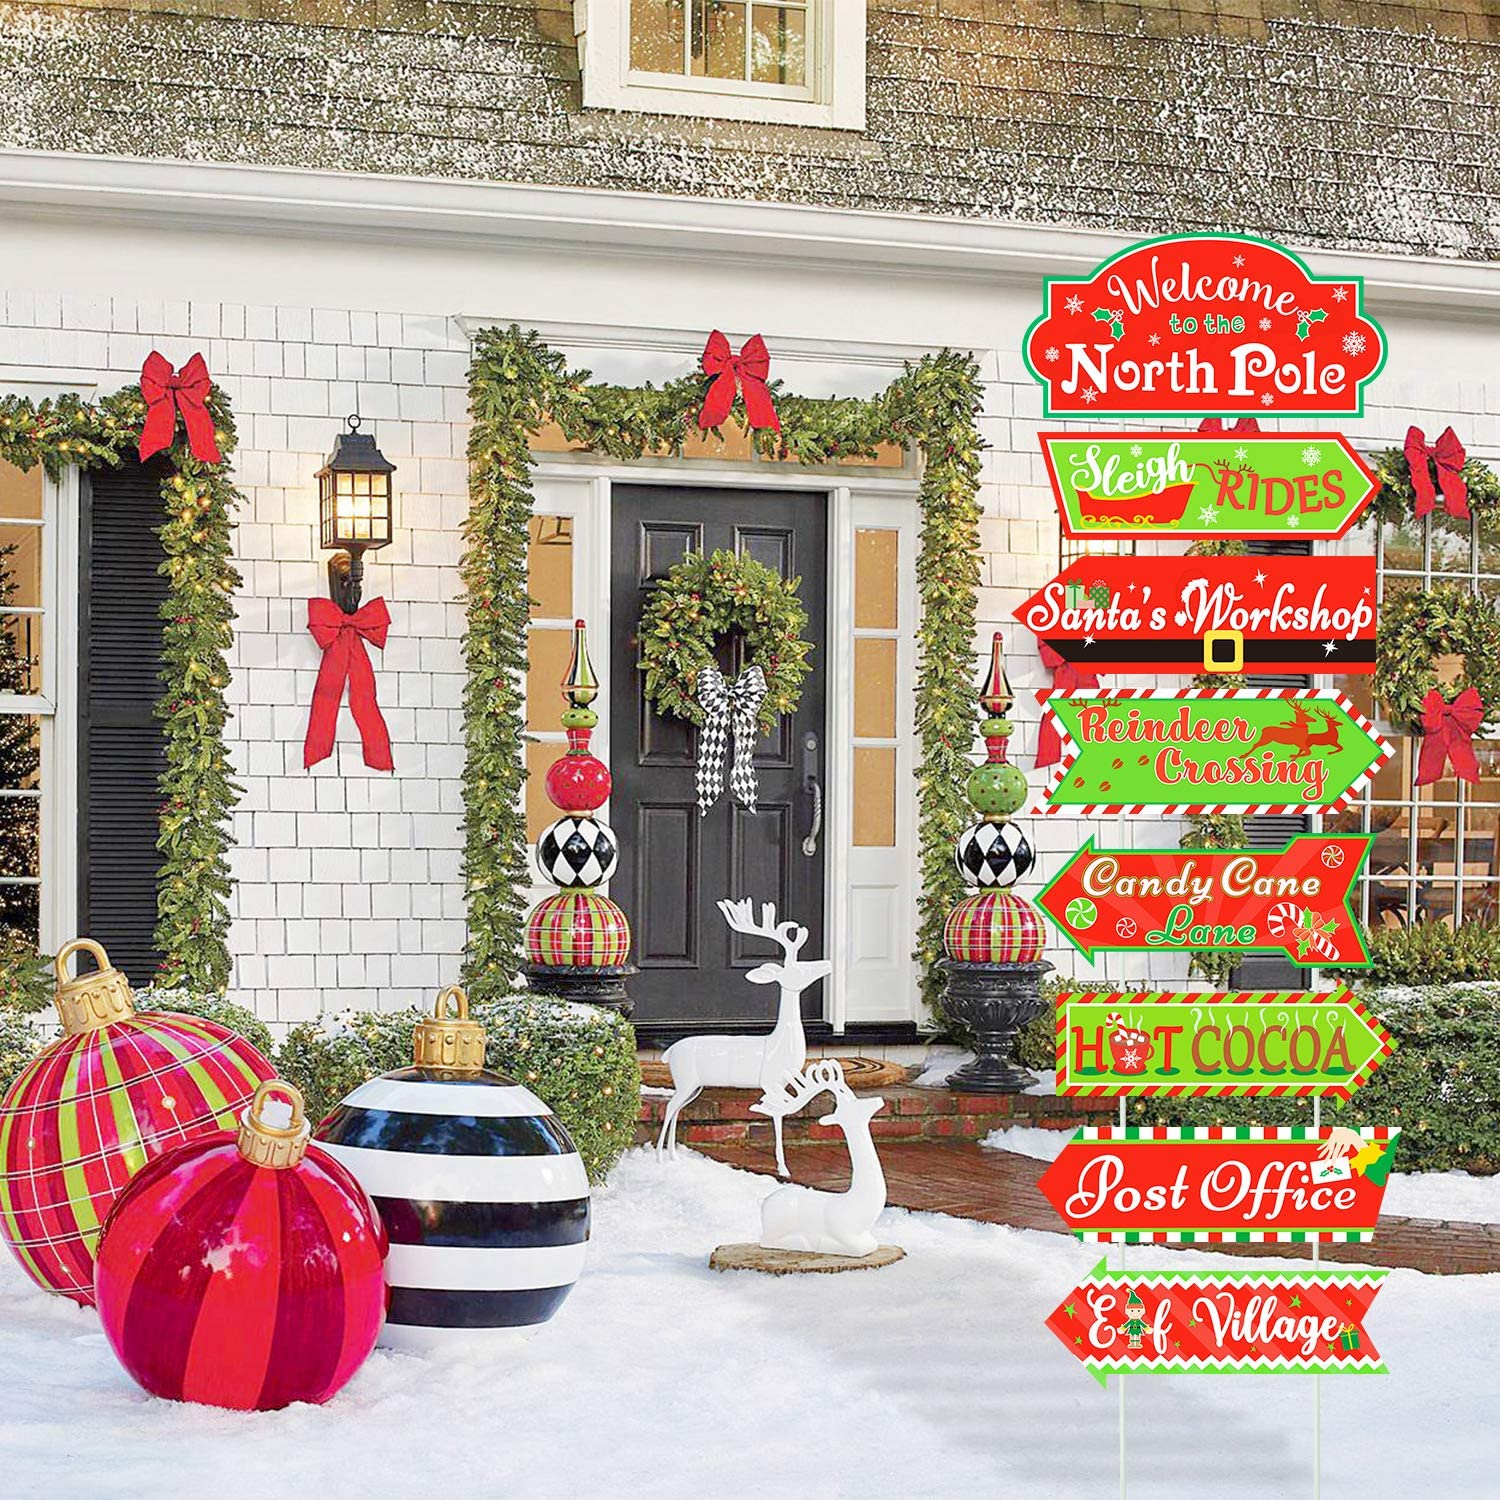 Huray Rayho Party North Pole Street Yard Sign Cutouts with Stakes for Christmas Holiday Lawn Yard Outdoor Decorations Xmas Holiday Winter Decorations Outdoor Set of 8